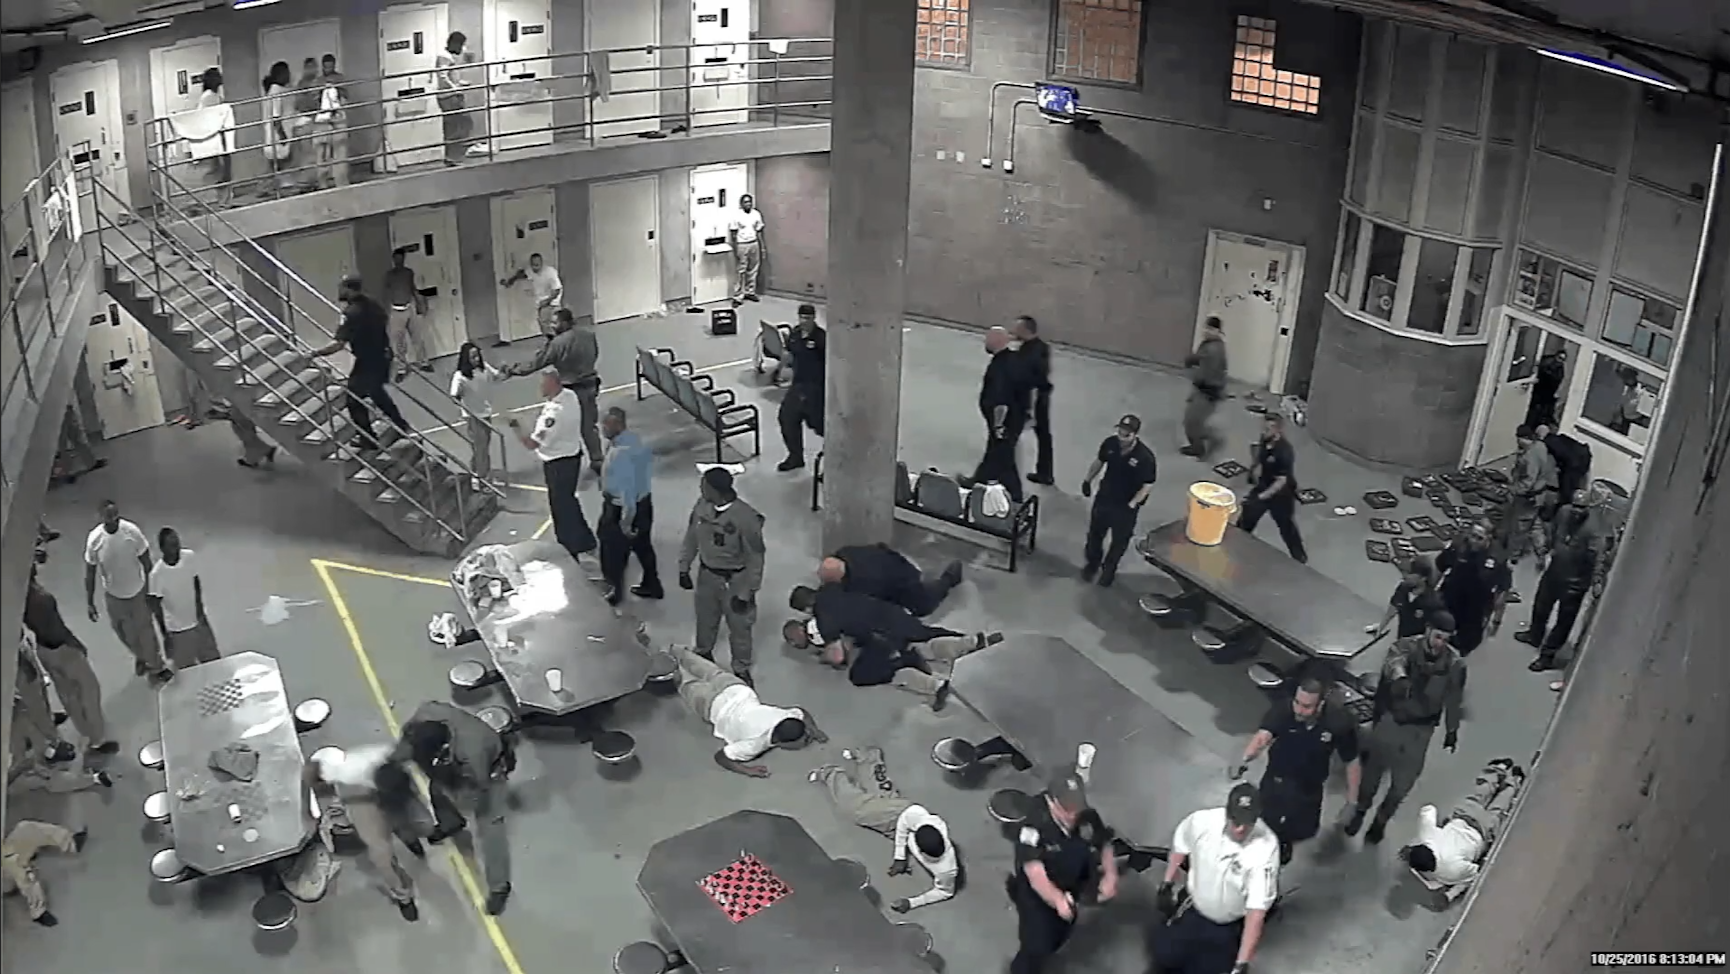 Surveillance video: Cook County Jail fight